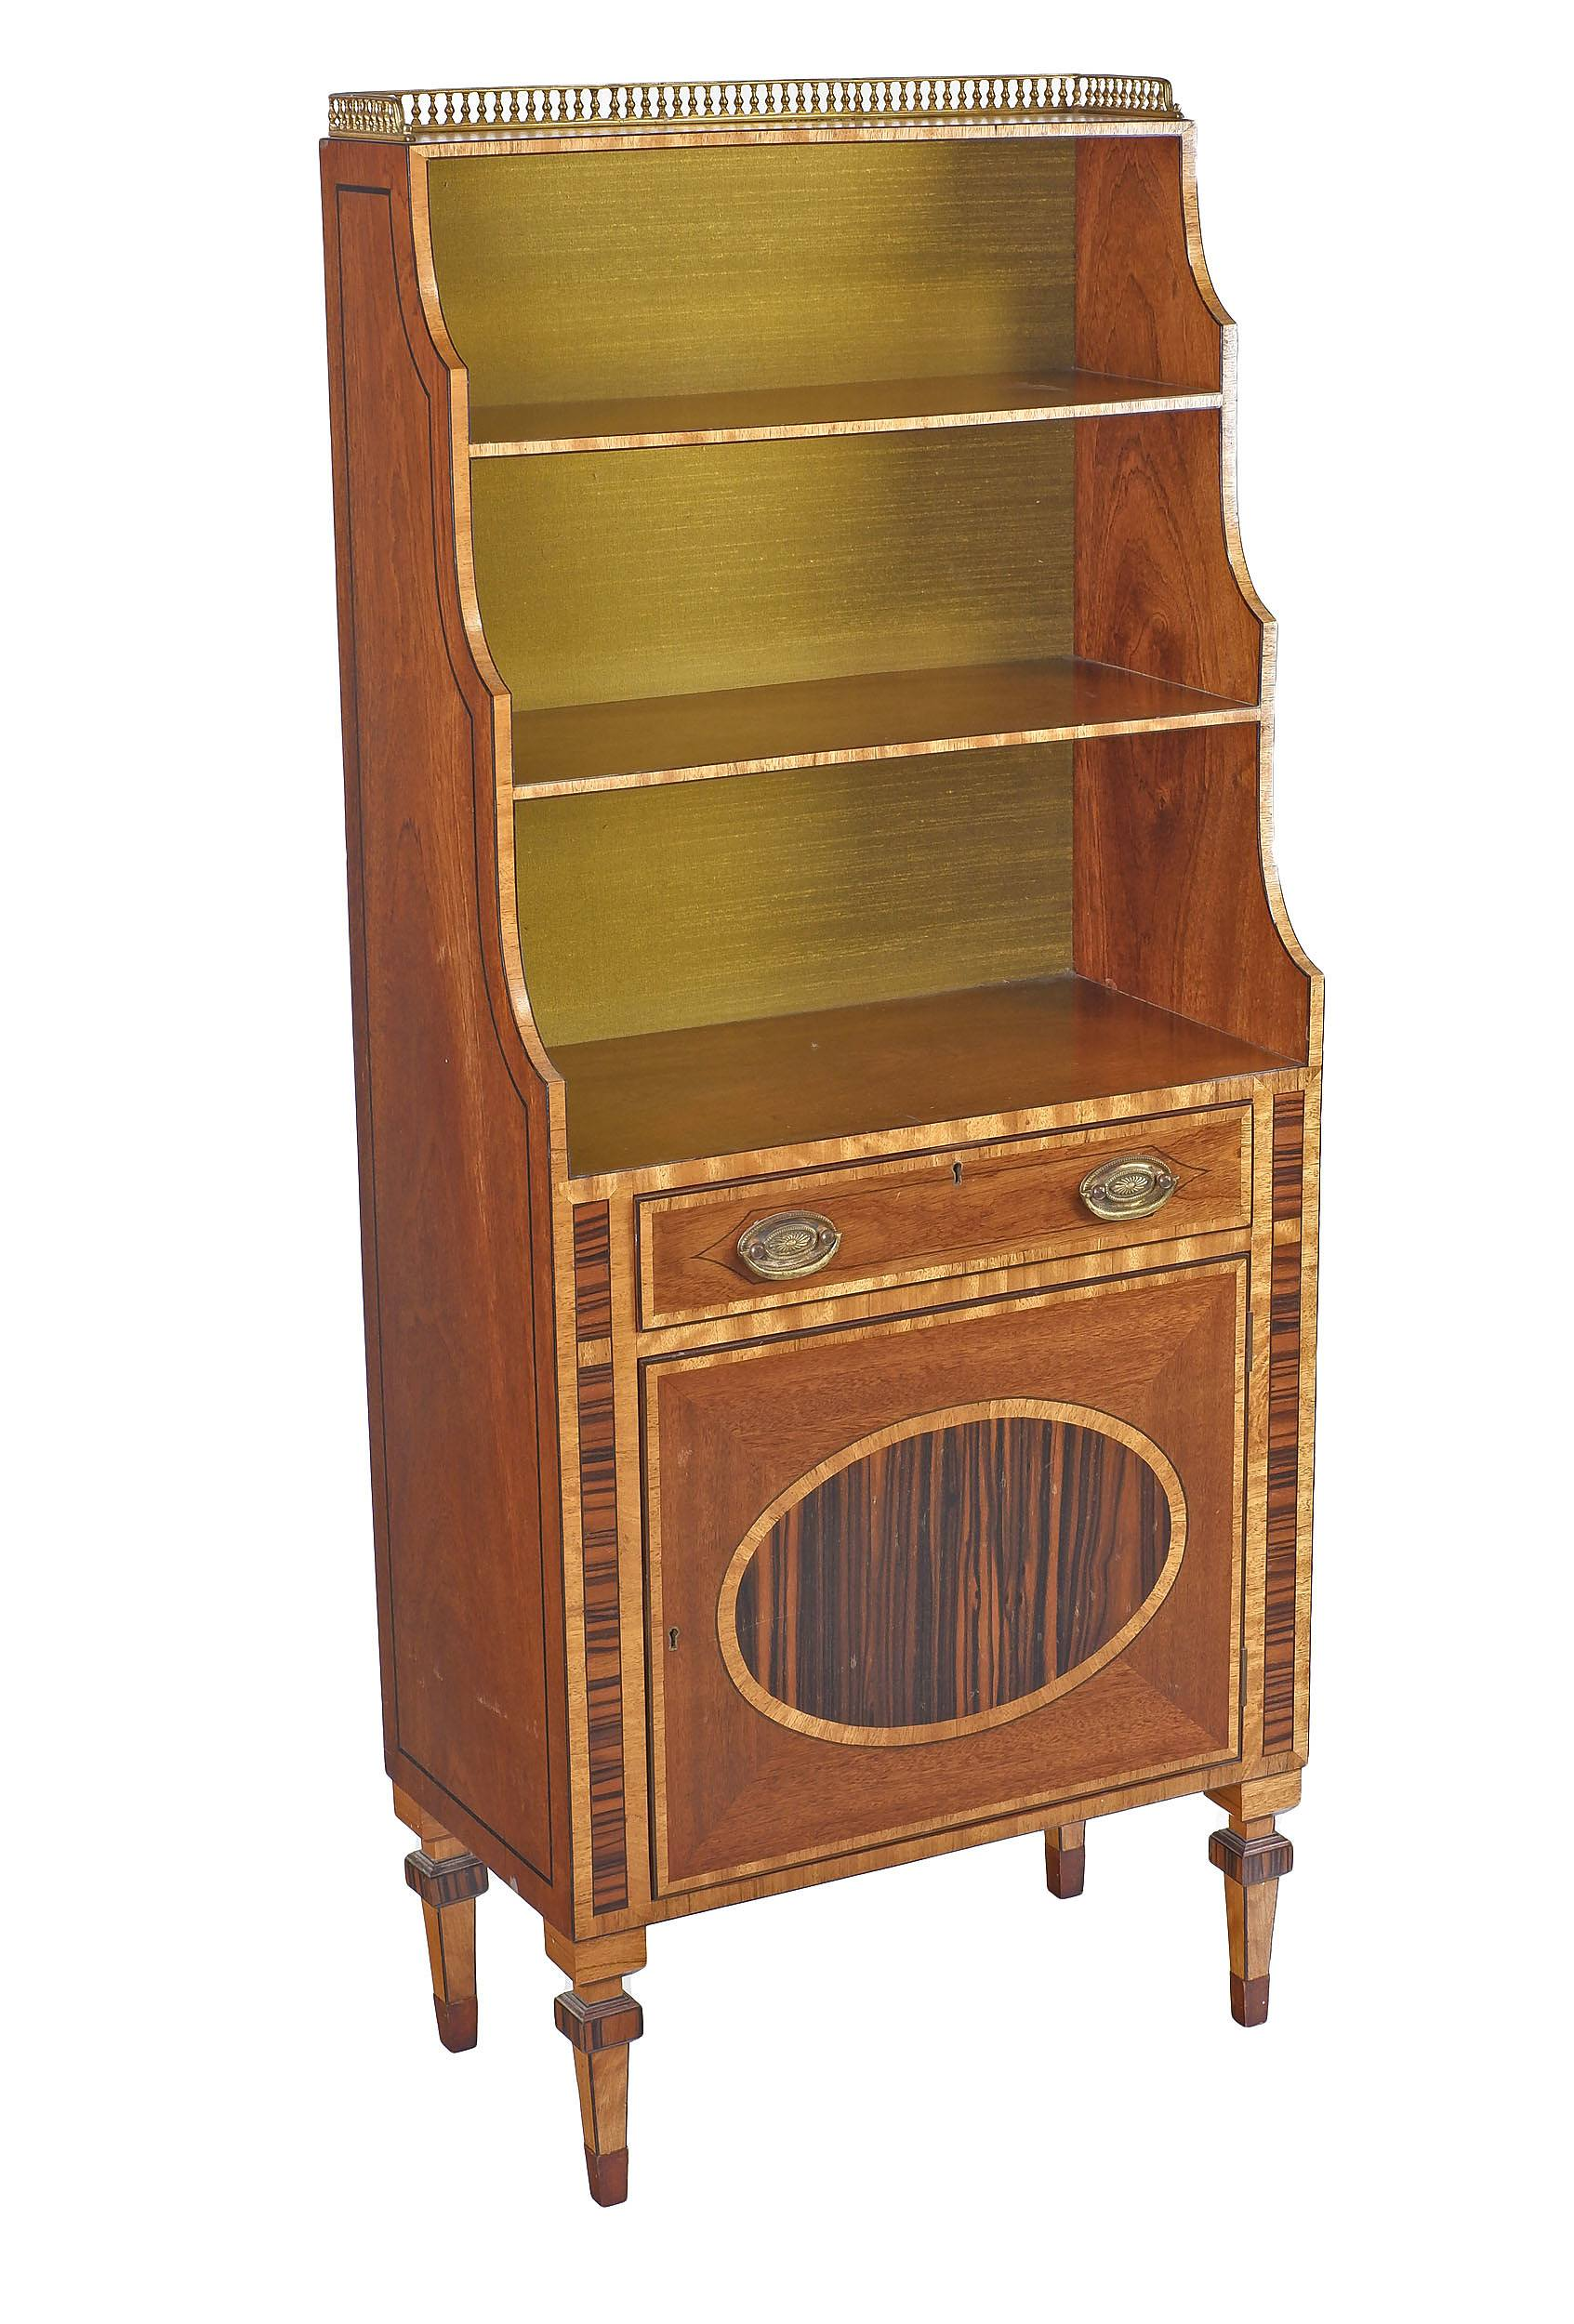 'Reproduction Sheraton Style Mahogany Dwarf Bookcase with Macassar Ebony Veneering and Pierced Brass Gallery Mid to Late 20th Century'